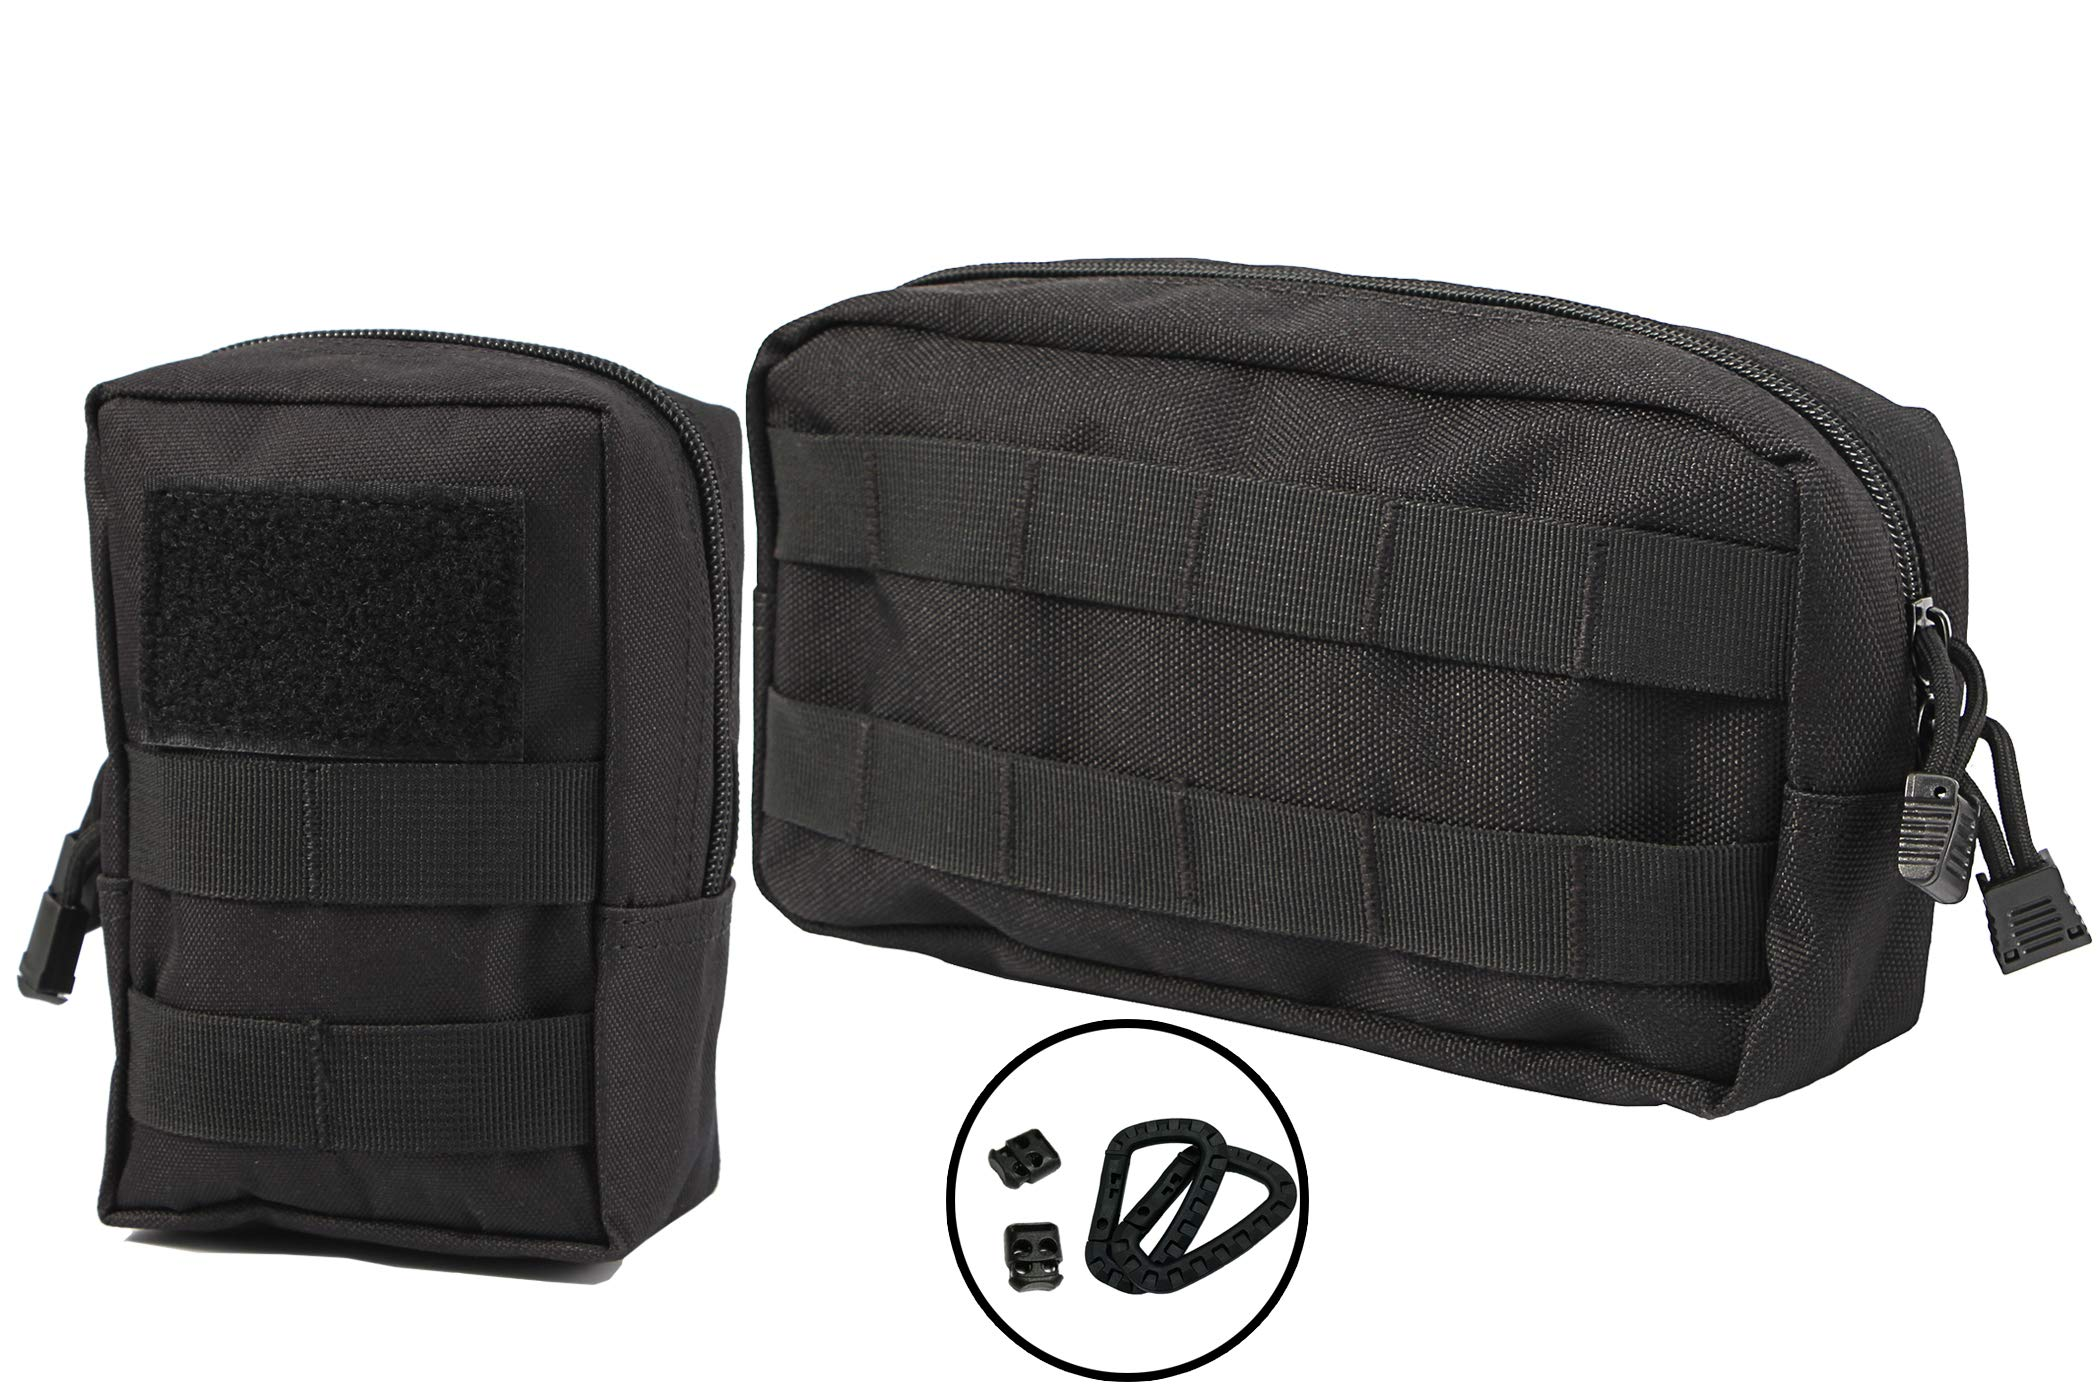 LefRight 2 Pack Small Molle Pouch Multipurpose EDC Compact Admin Pouch Utility Tool Bag combo Clips